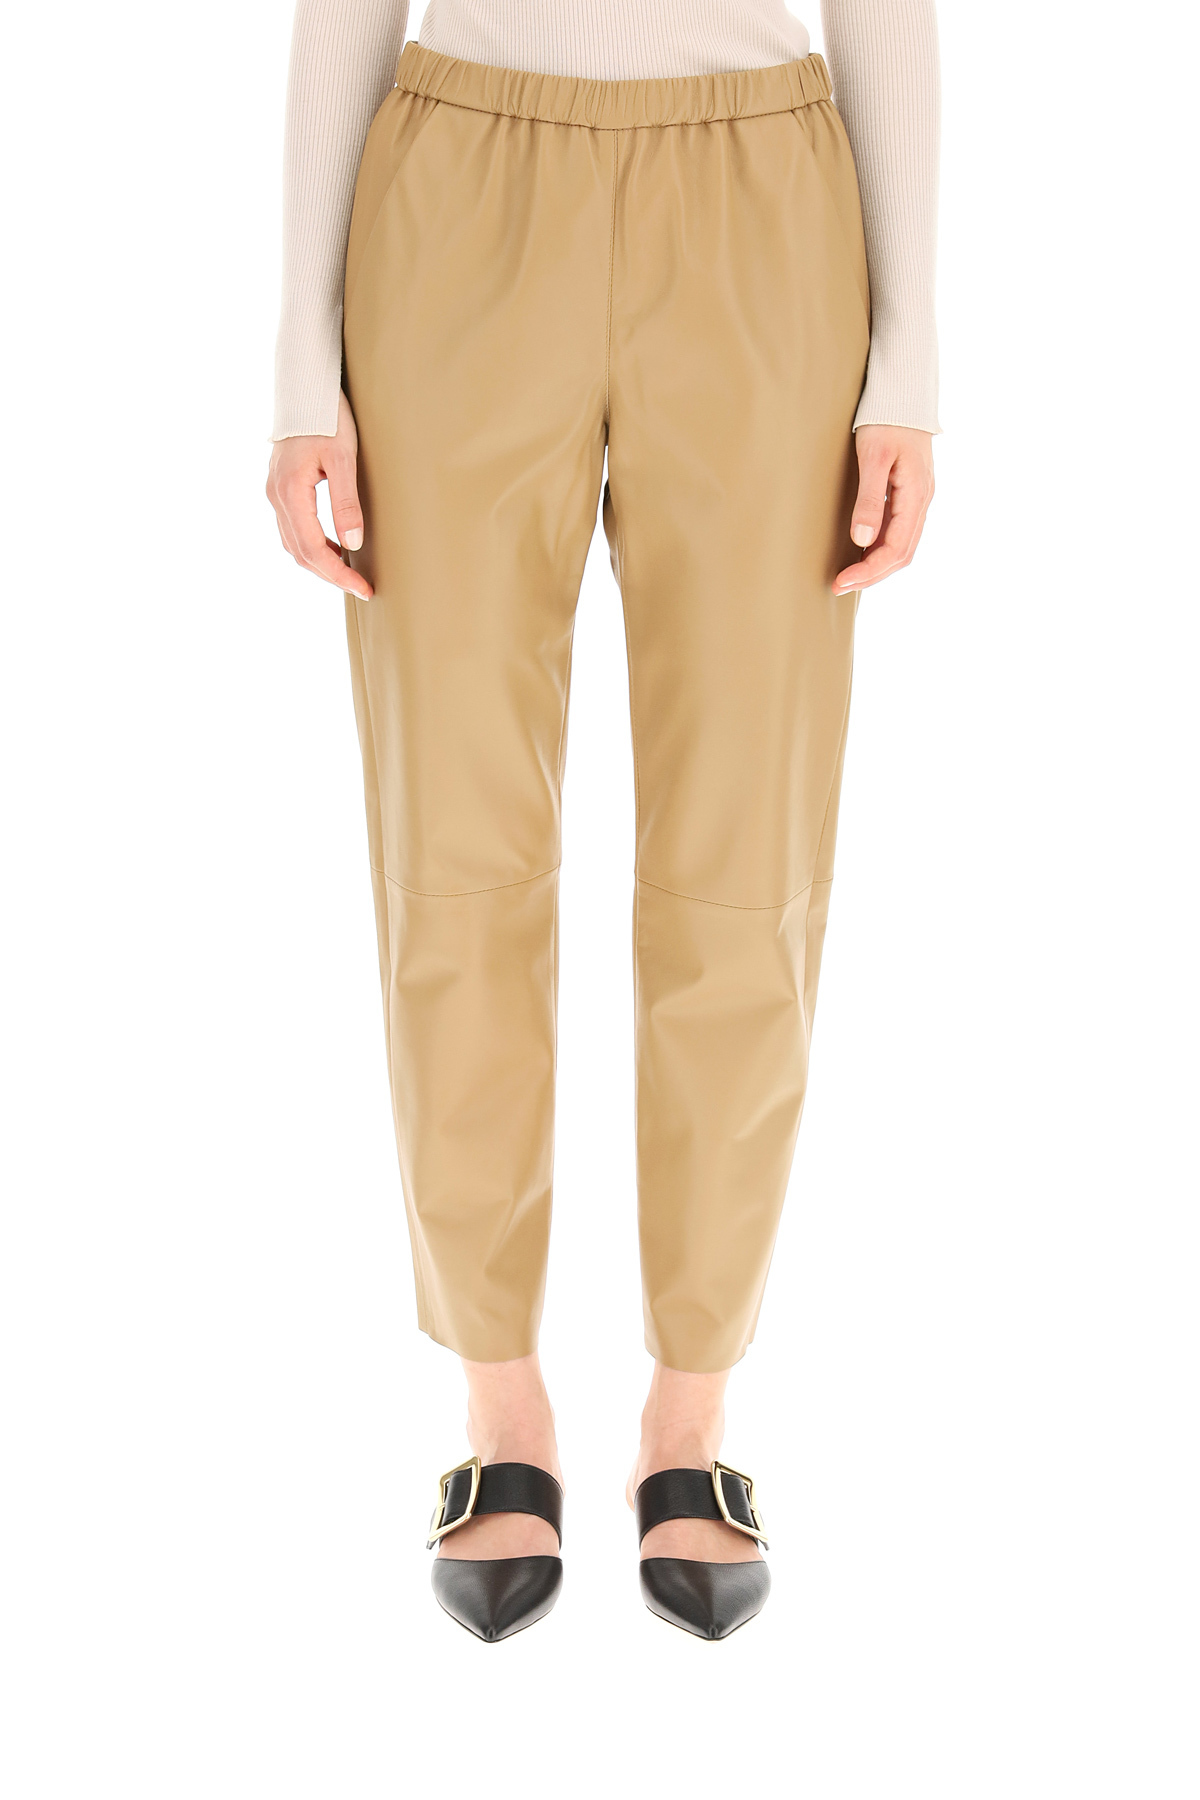 Drome jogger baggy in nappa